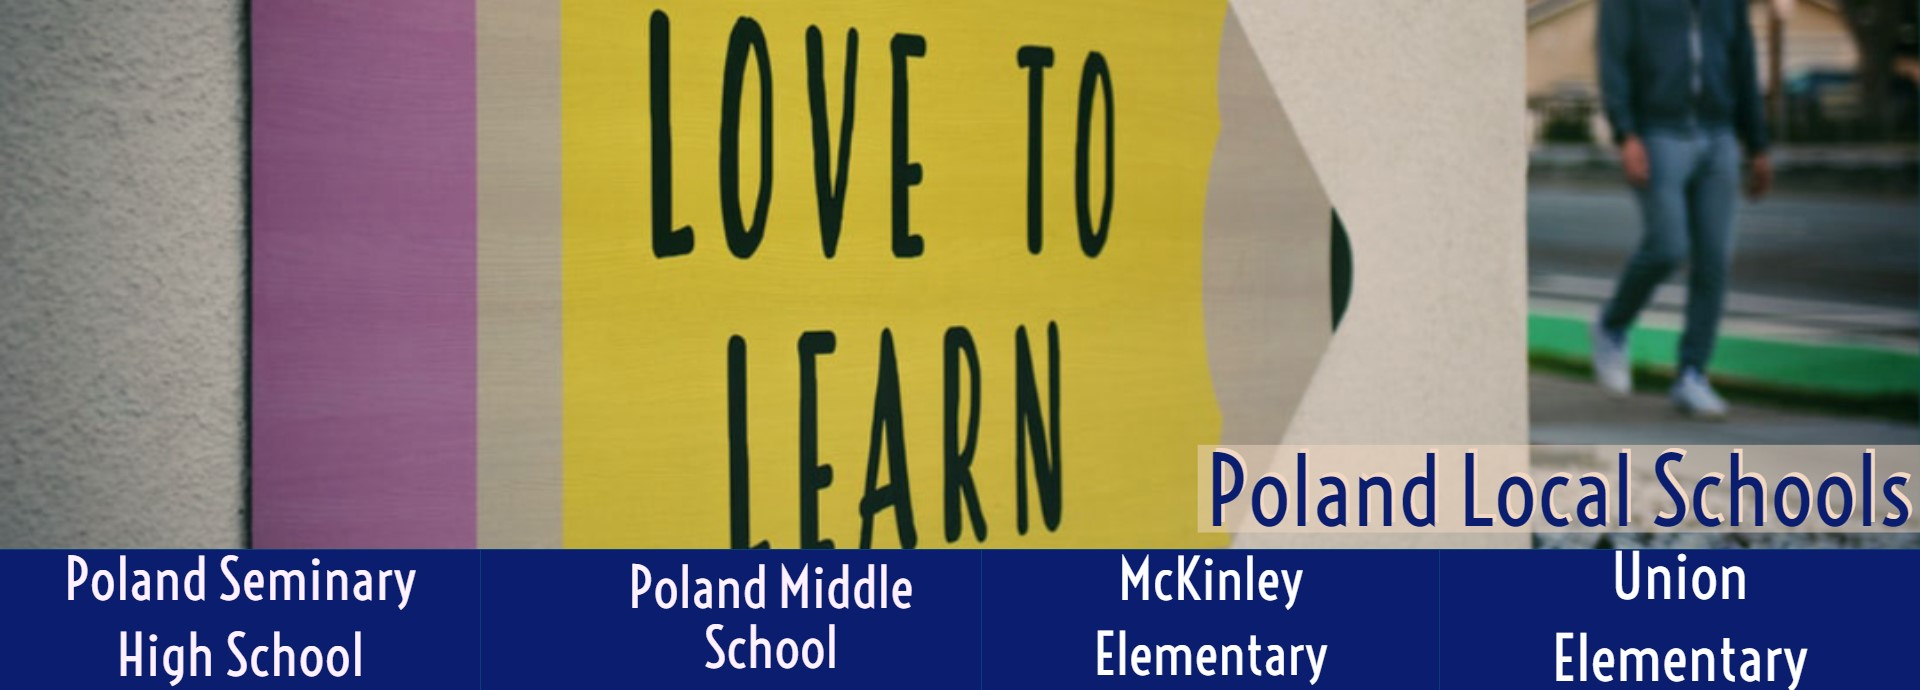 Poland Local Schools, Love to Learn.